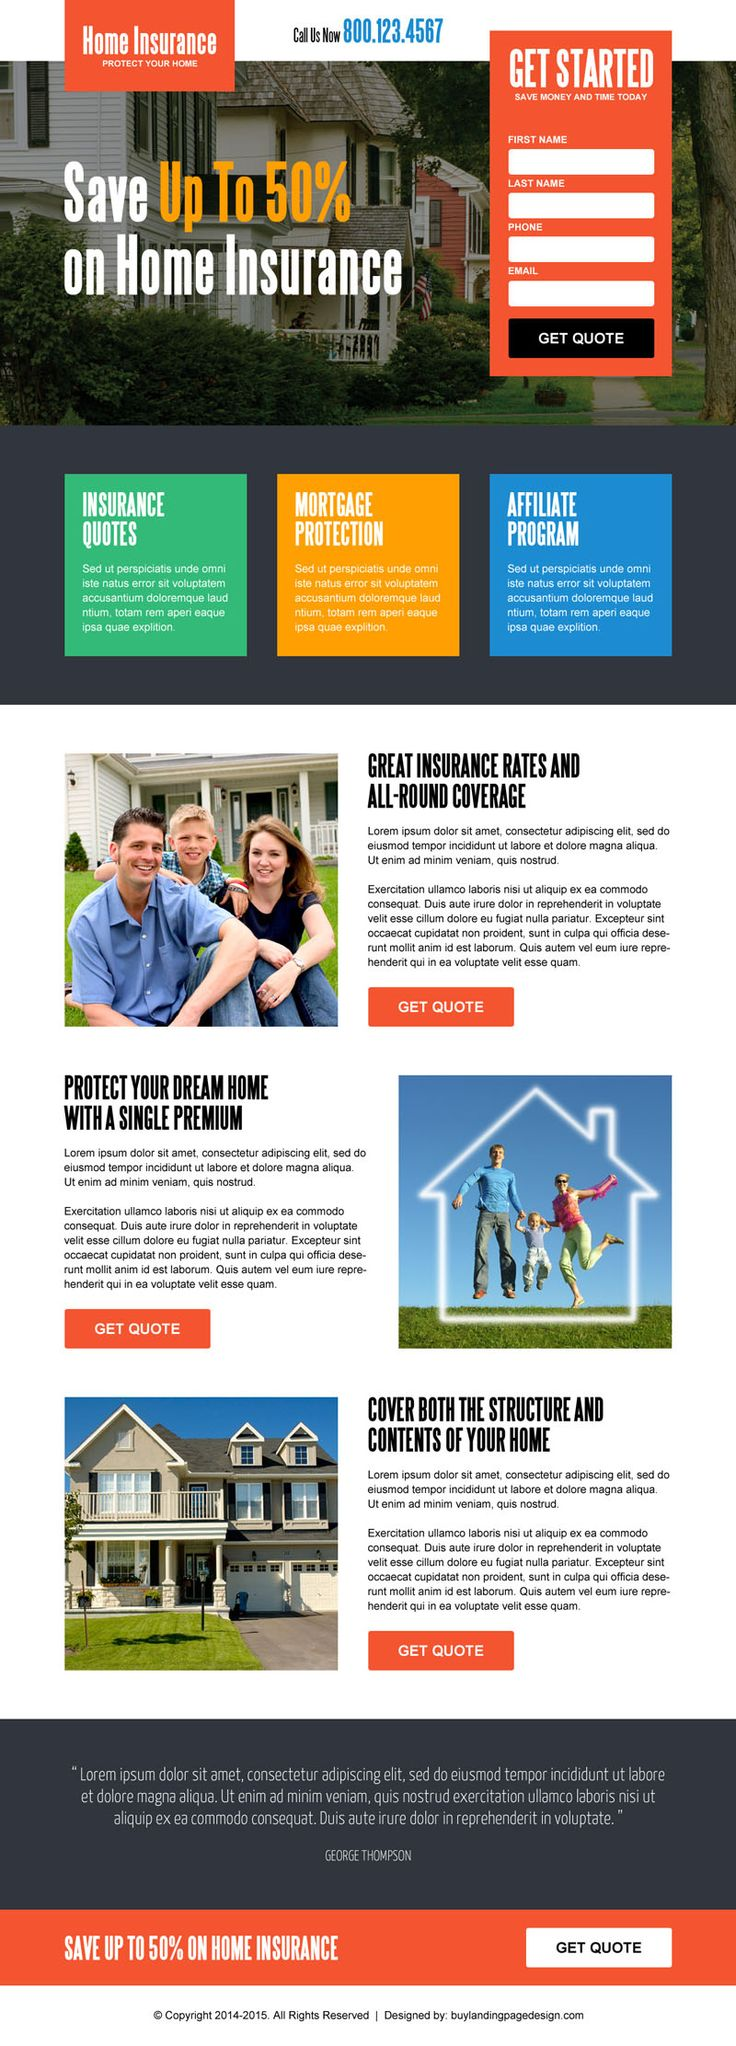 save money on home insurance lead generating responsive squeeze page design